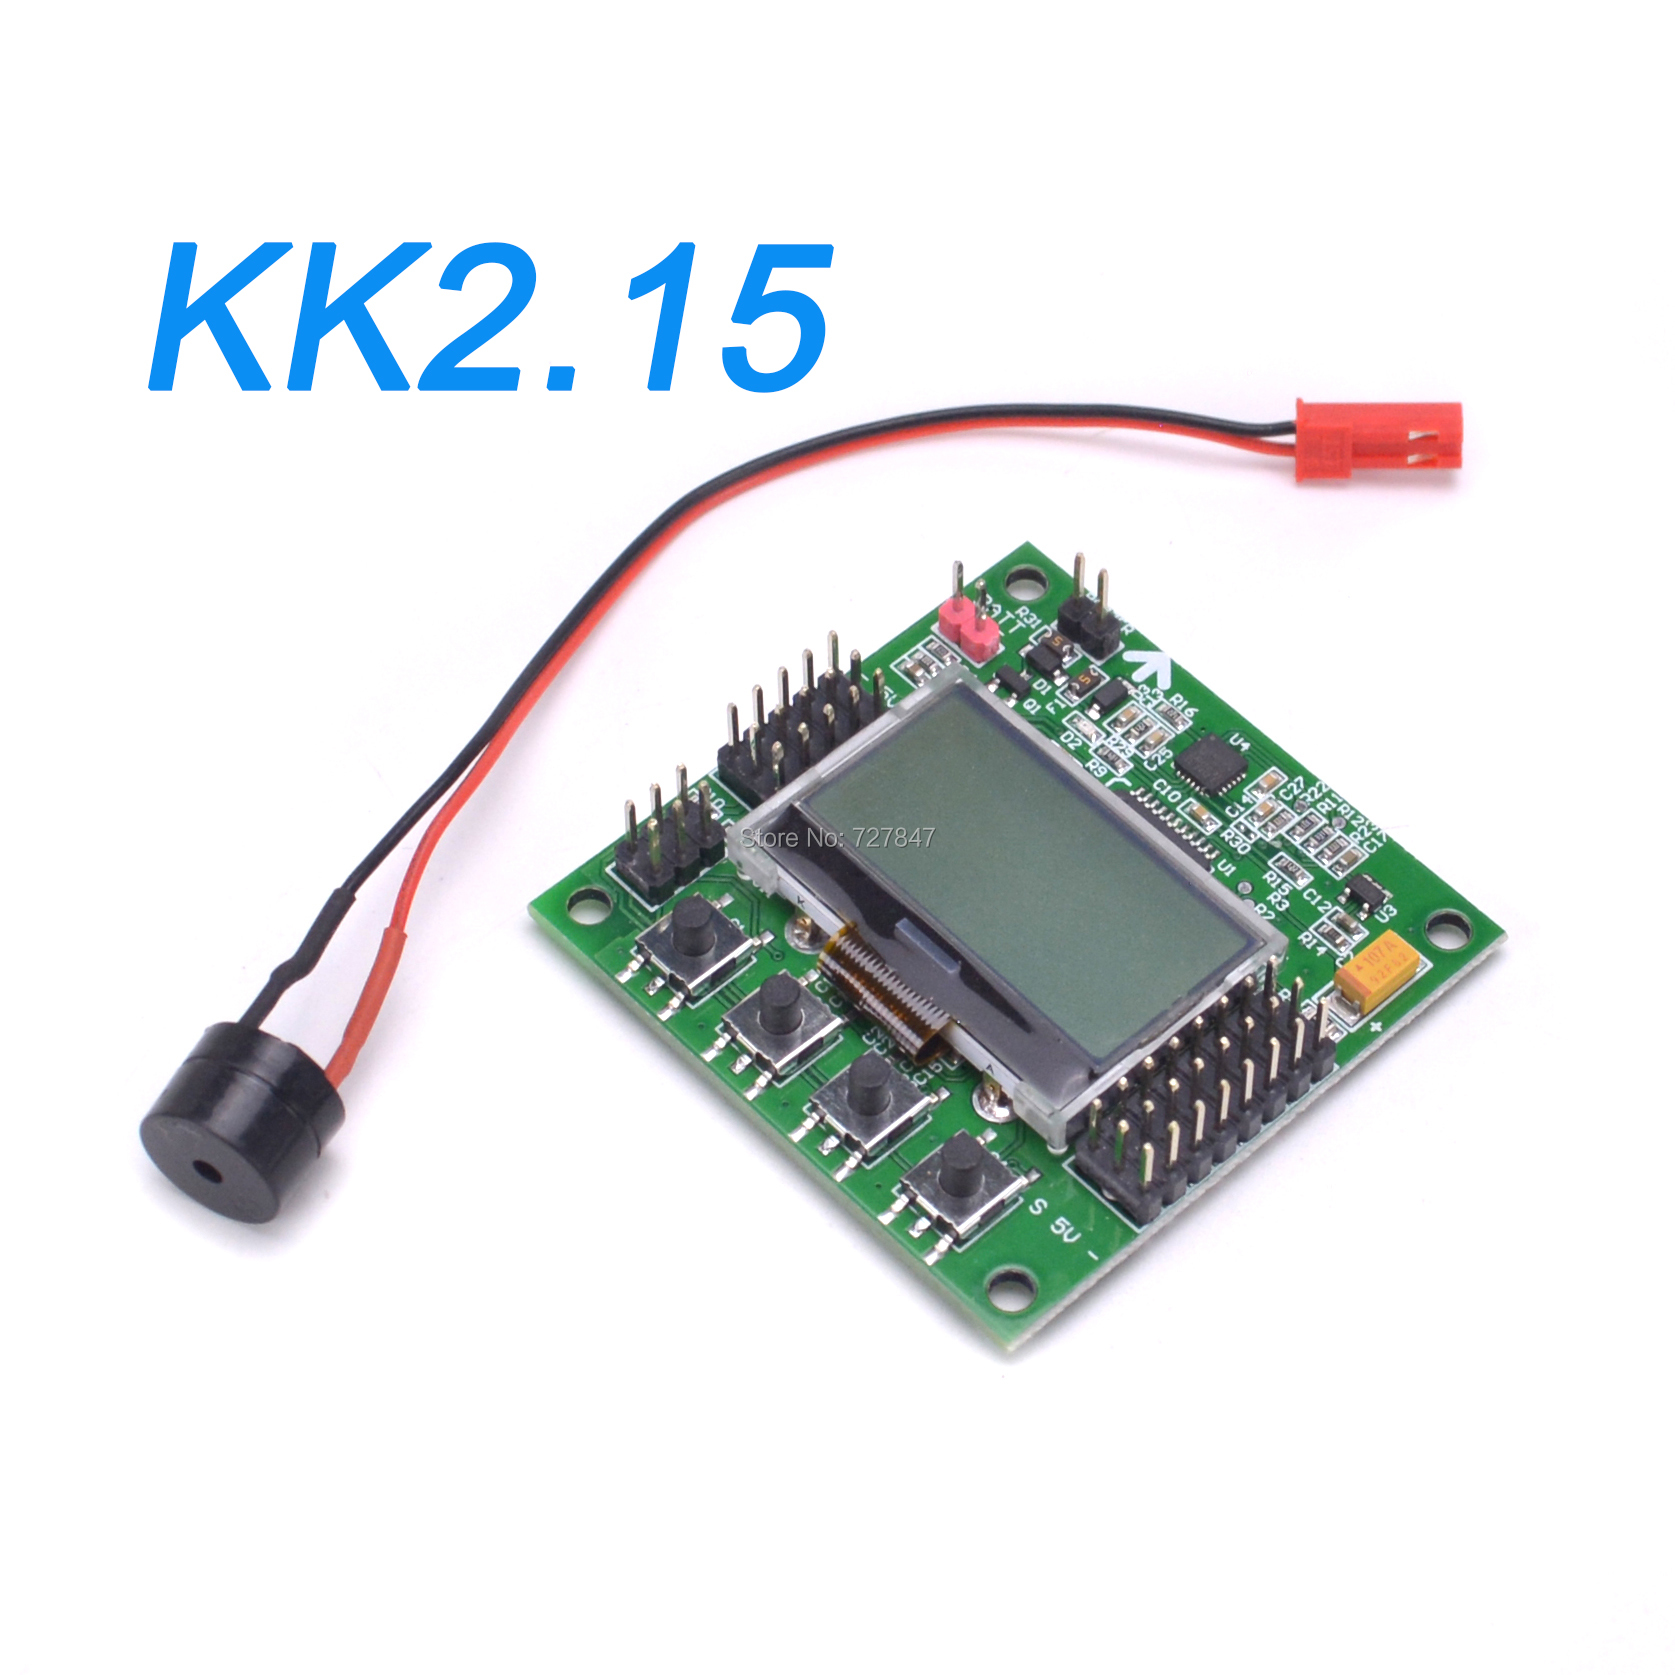 kk 2 1 5 kk2 15 lcd multirotor flight control board kk2 1 5 for quadcopter kk2 6050mpu 644pa f450 f550 s500 [ 1675 x 1675 Pixel ]